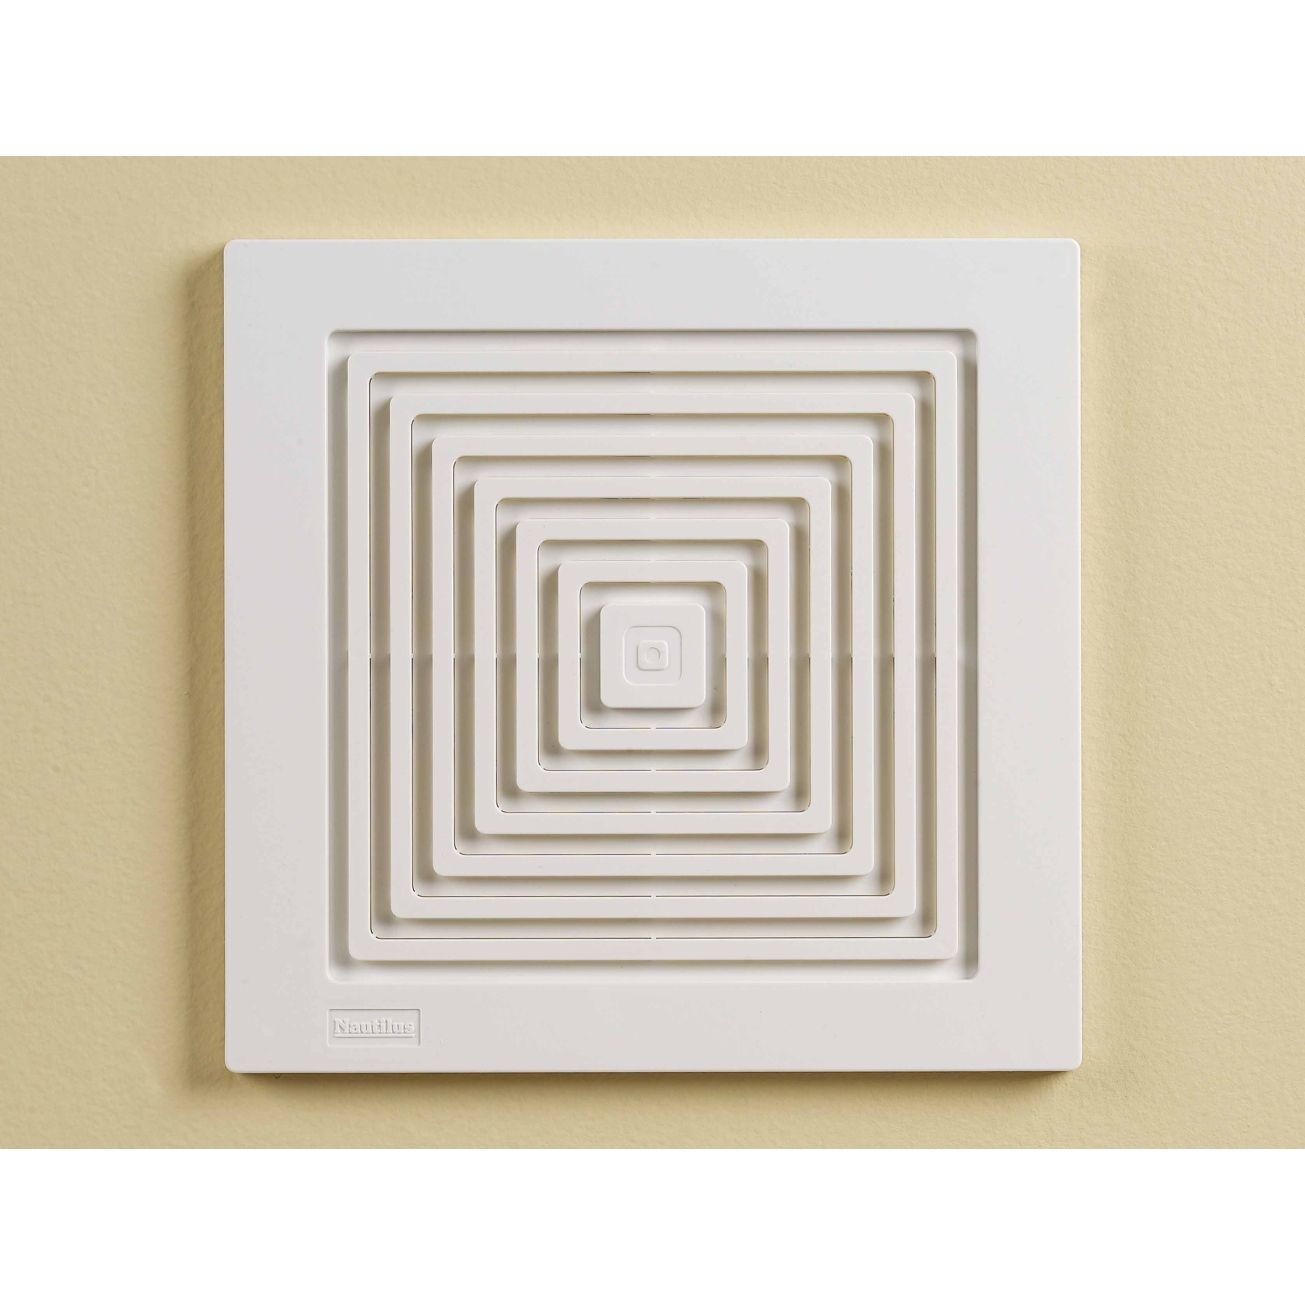 Bathroom Ceiling Fan Light Covers: Home Office Decorating Ideas: Bathroom Exhaust Fan Light Cover